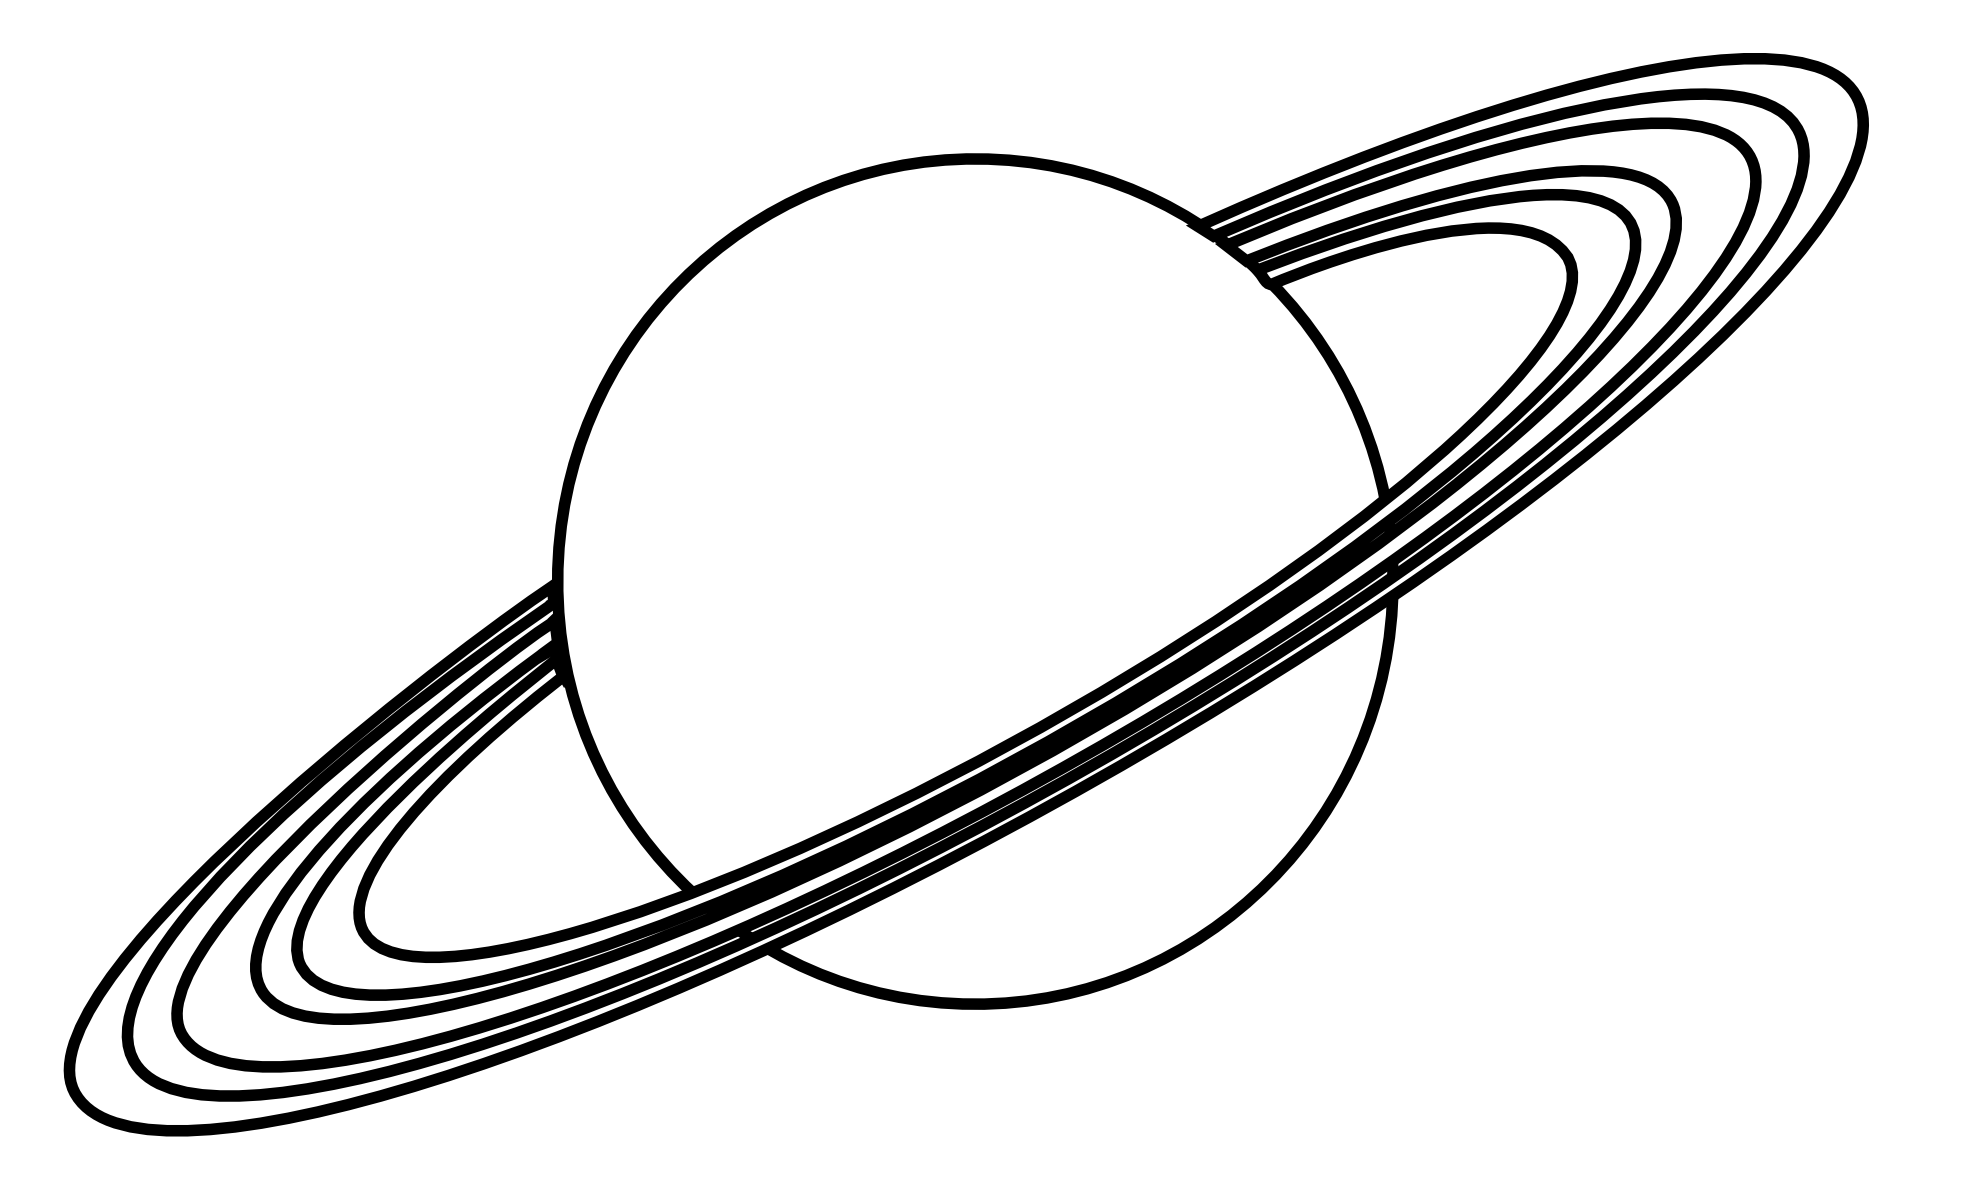 collection of planet. Planets clipart individual